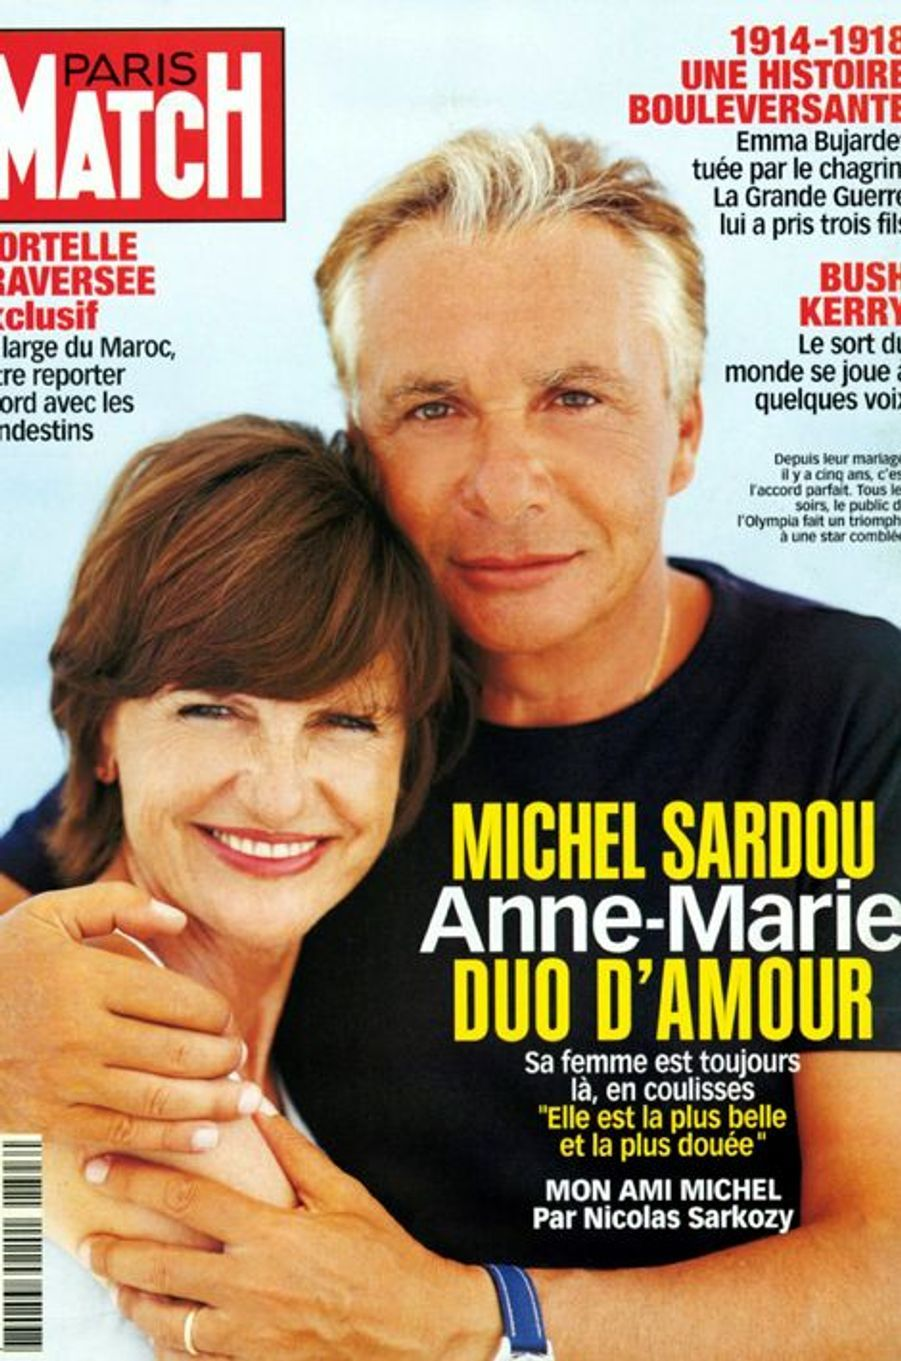 Couverture de Paris Match du 28 octobre 2004